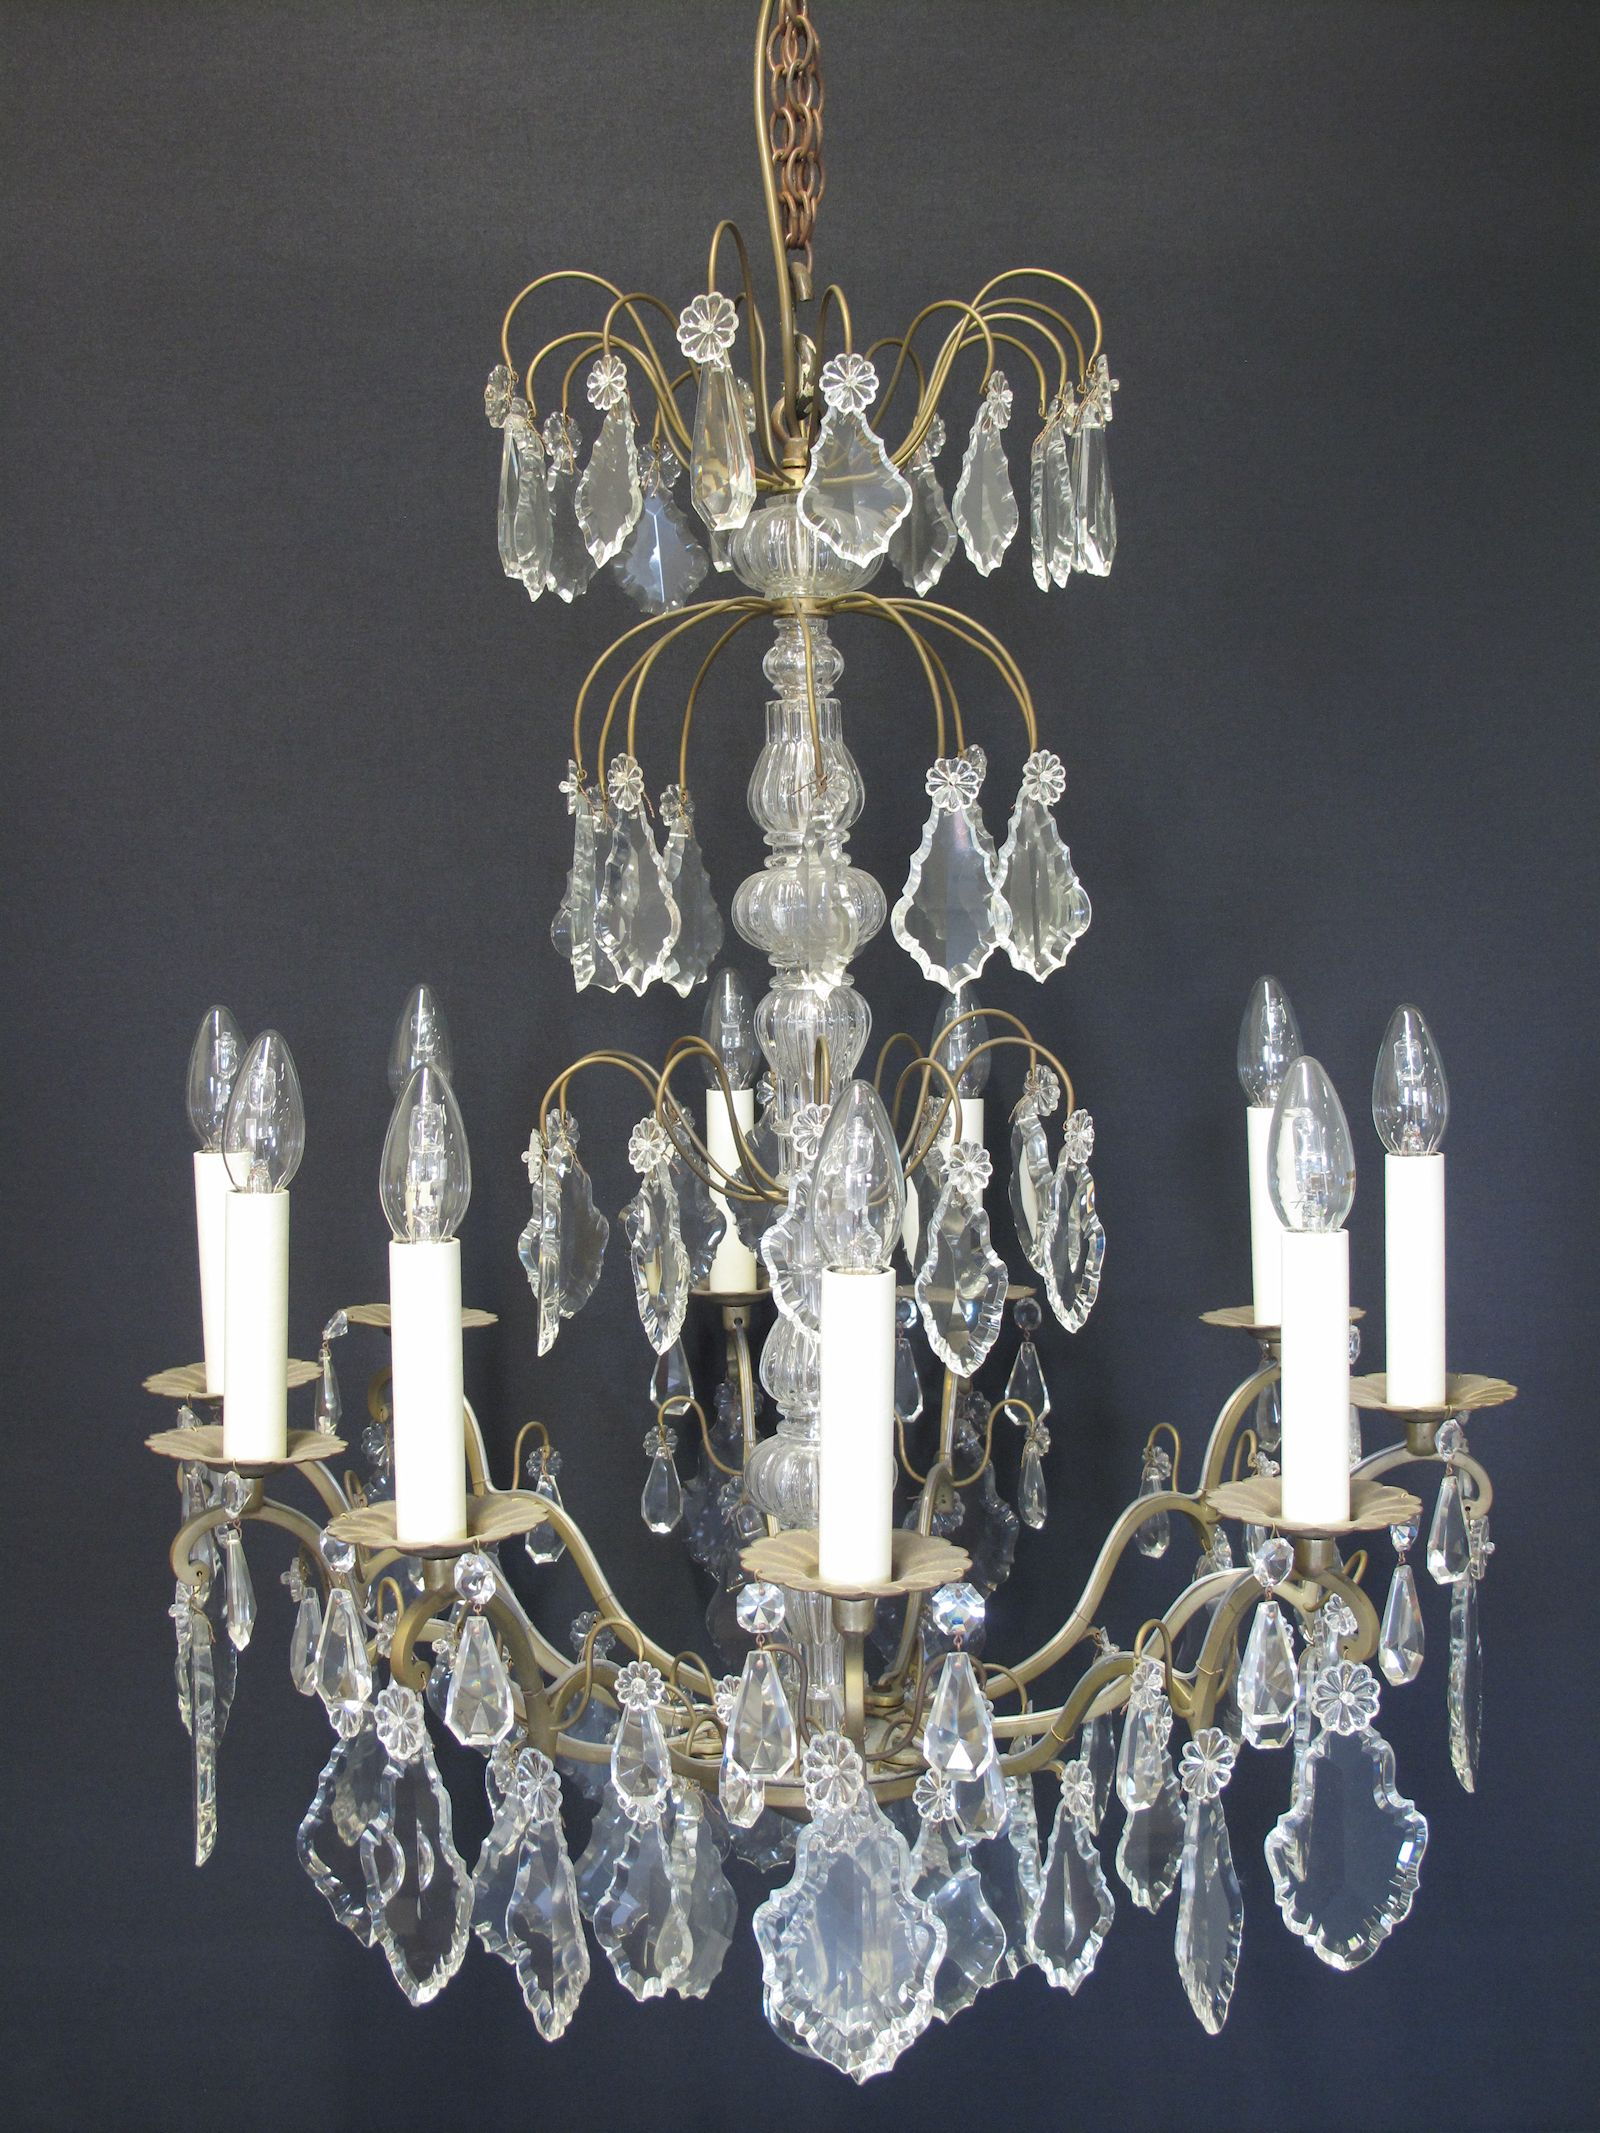 G p cohn antique chandeliers repairs restoration 10 arm french chandelier ca 1910 aloadofball Image collections